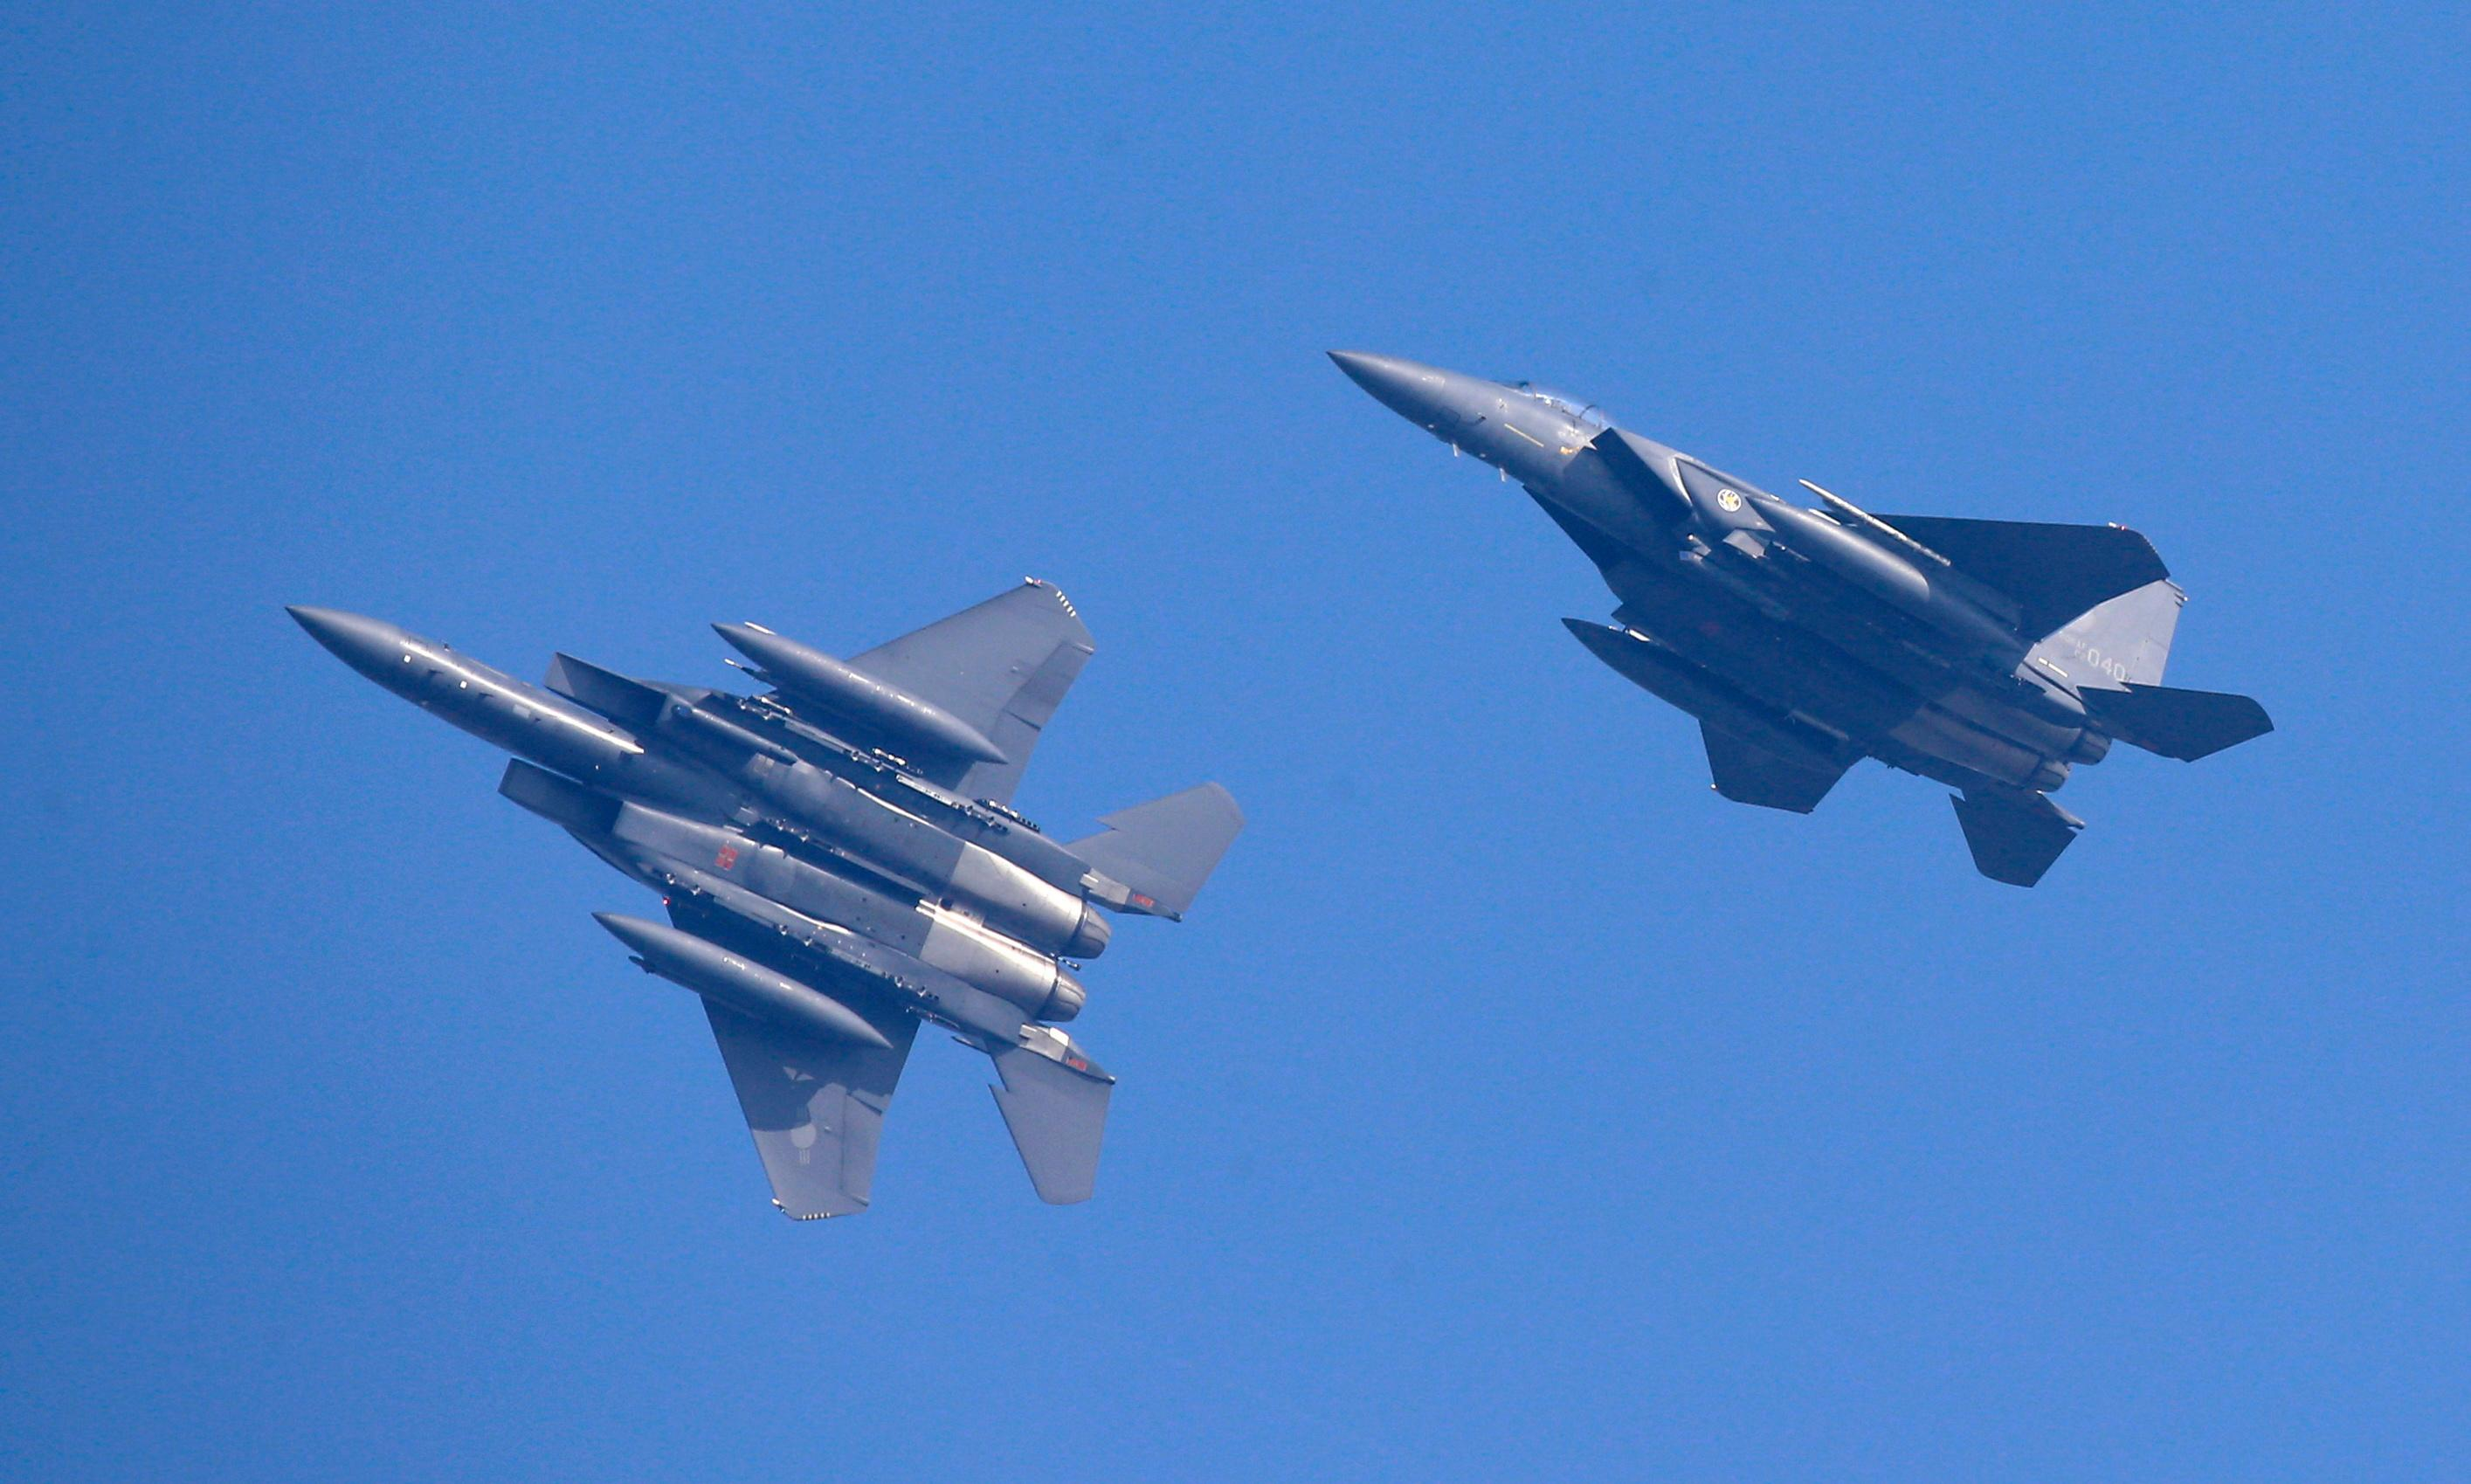 South Korean jets fire warning shots at Russian planes after airspace violation